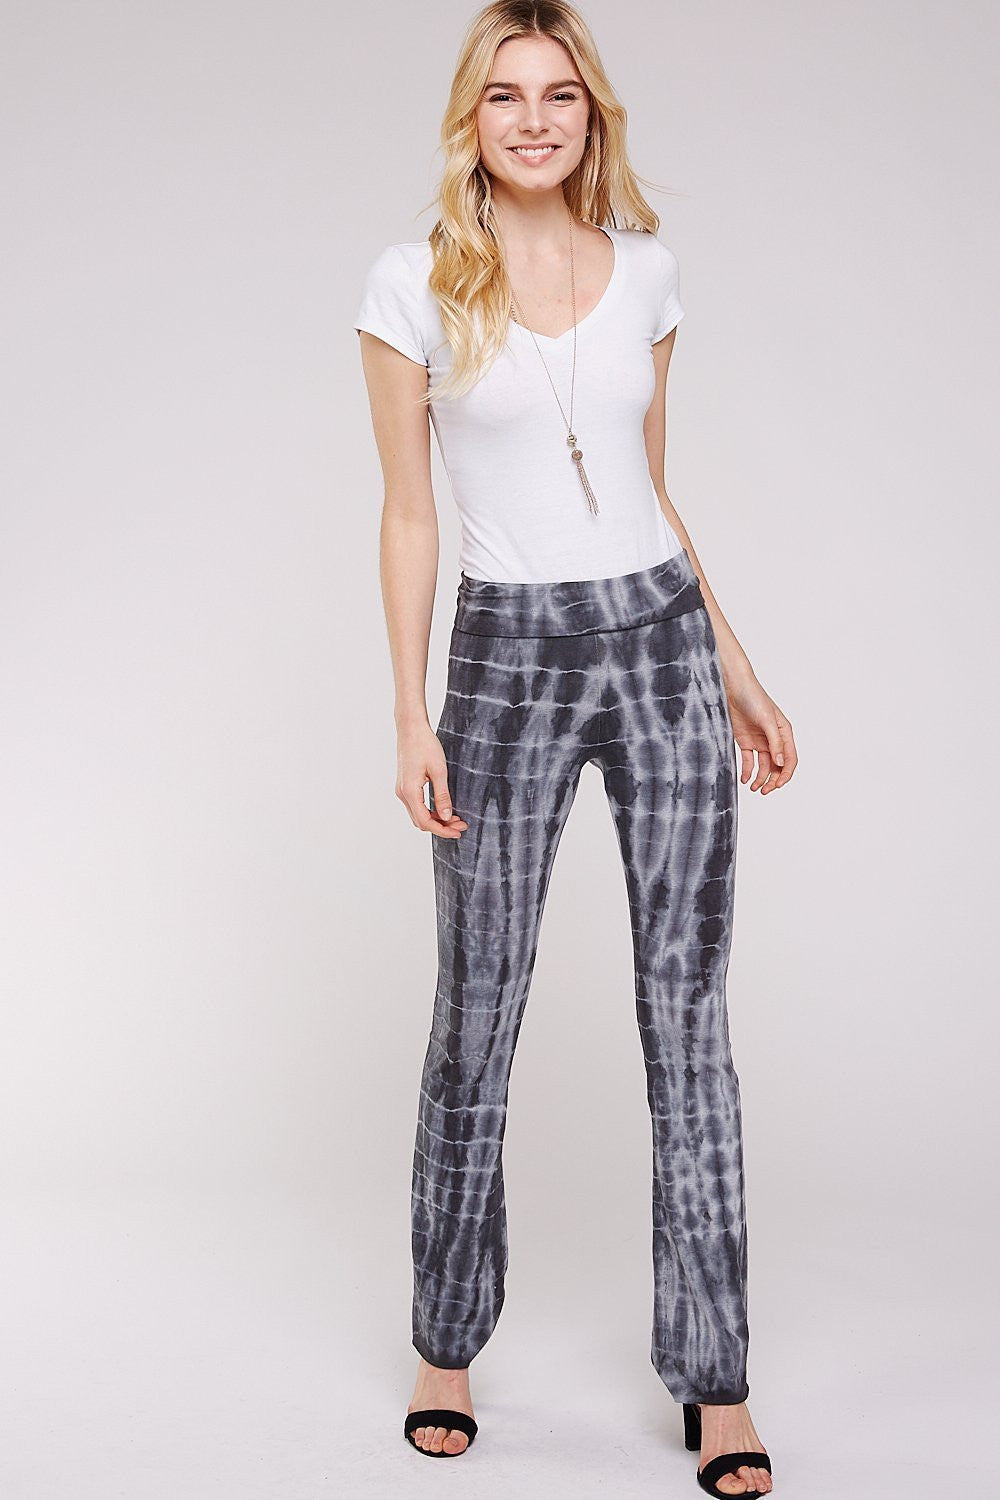 Wholesale Clothing, Online Wholesale Clothing, Women Clothing, Bohemian, Free People, tiedye, specialty wash, wholesale seller, wholesale women clothing shop, gypsy look, USA made, URBAN X APPAREL-PANTS-UPC3009G, fashiontrend2019